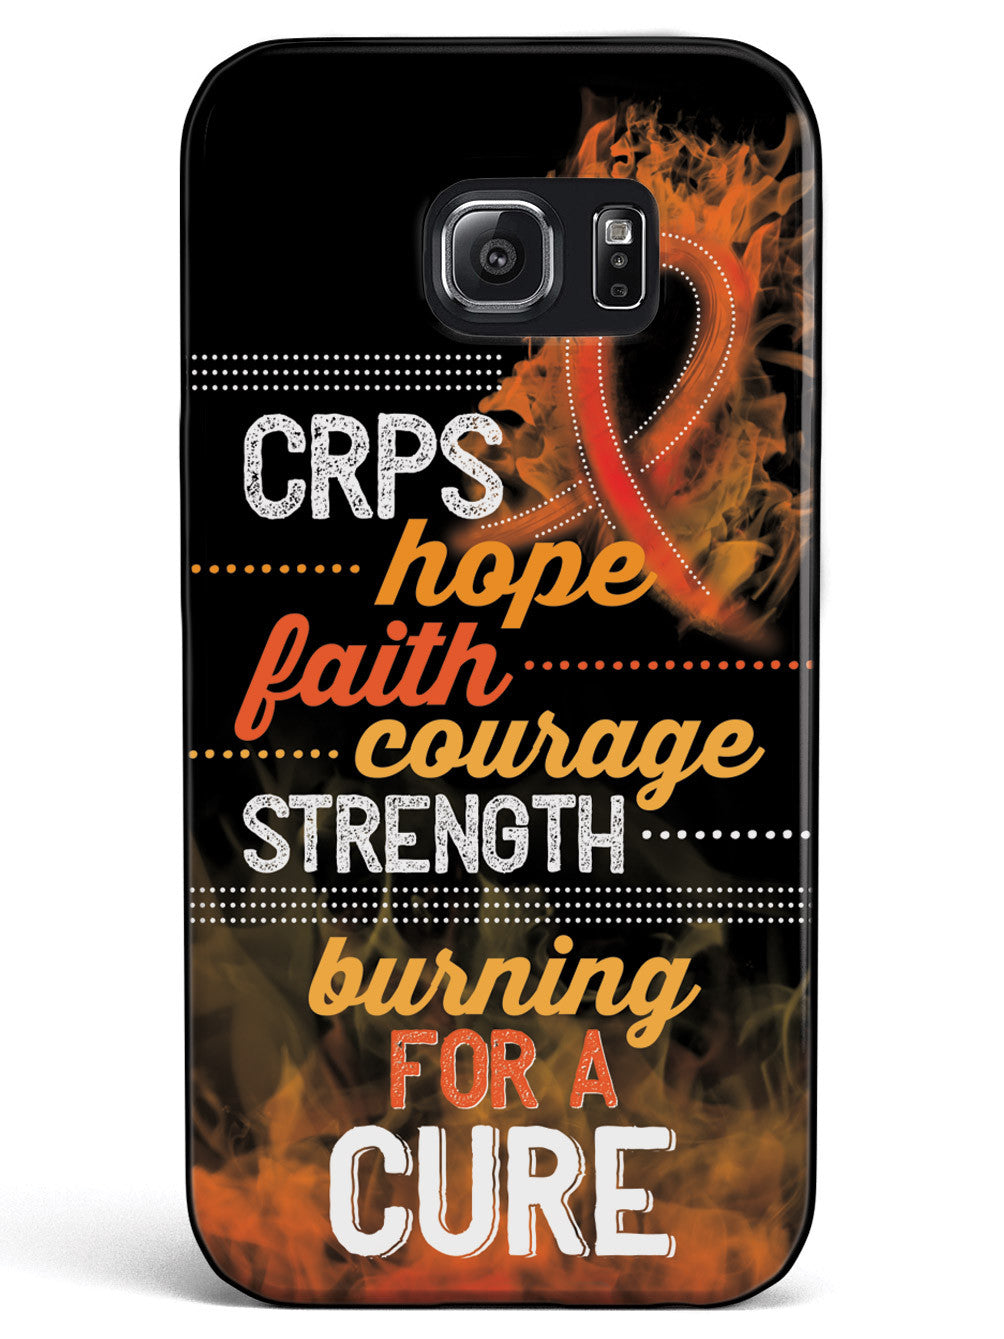 Burning for a Cure - CRPS Case